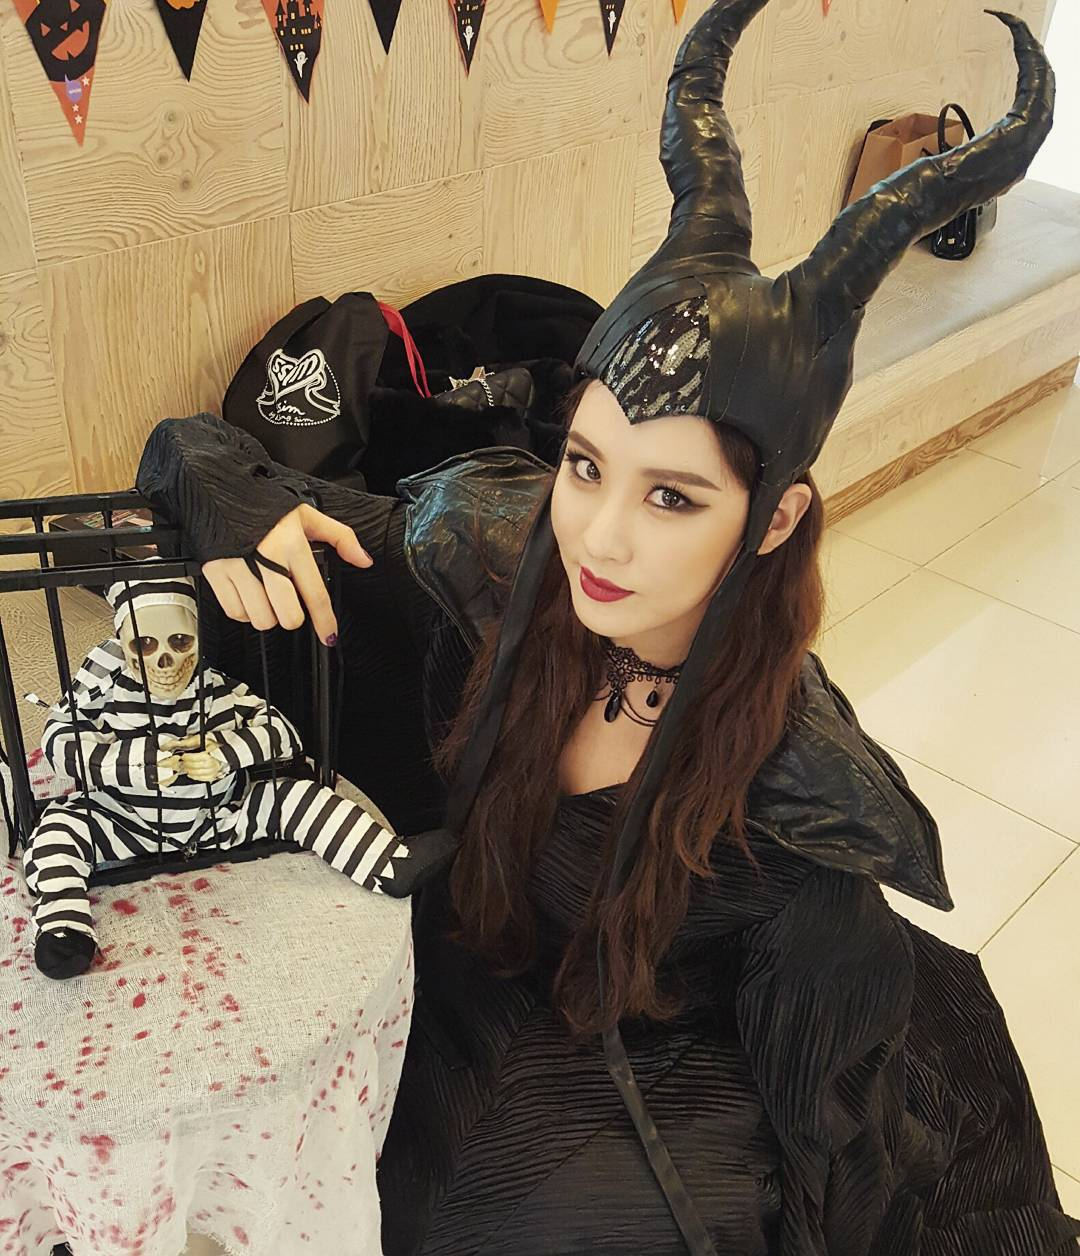 SNSD members and their updates from SMTown's Halloween Party ...